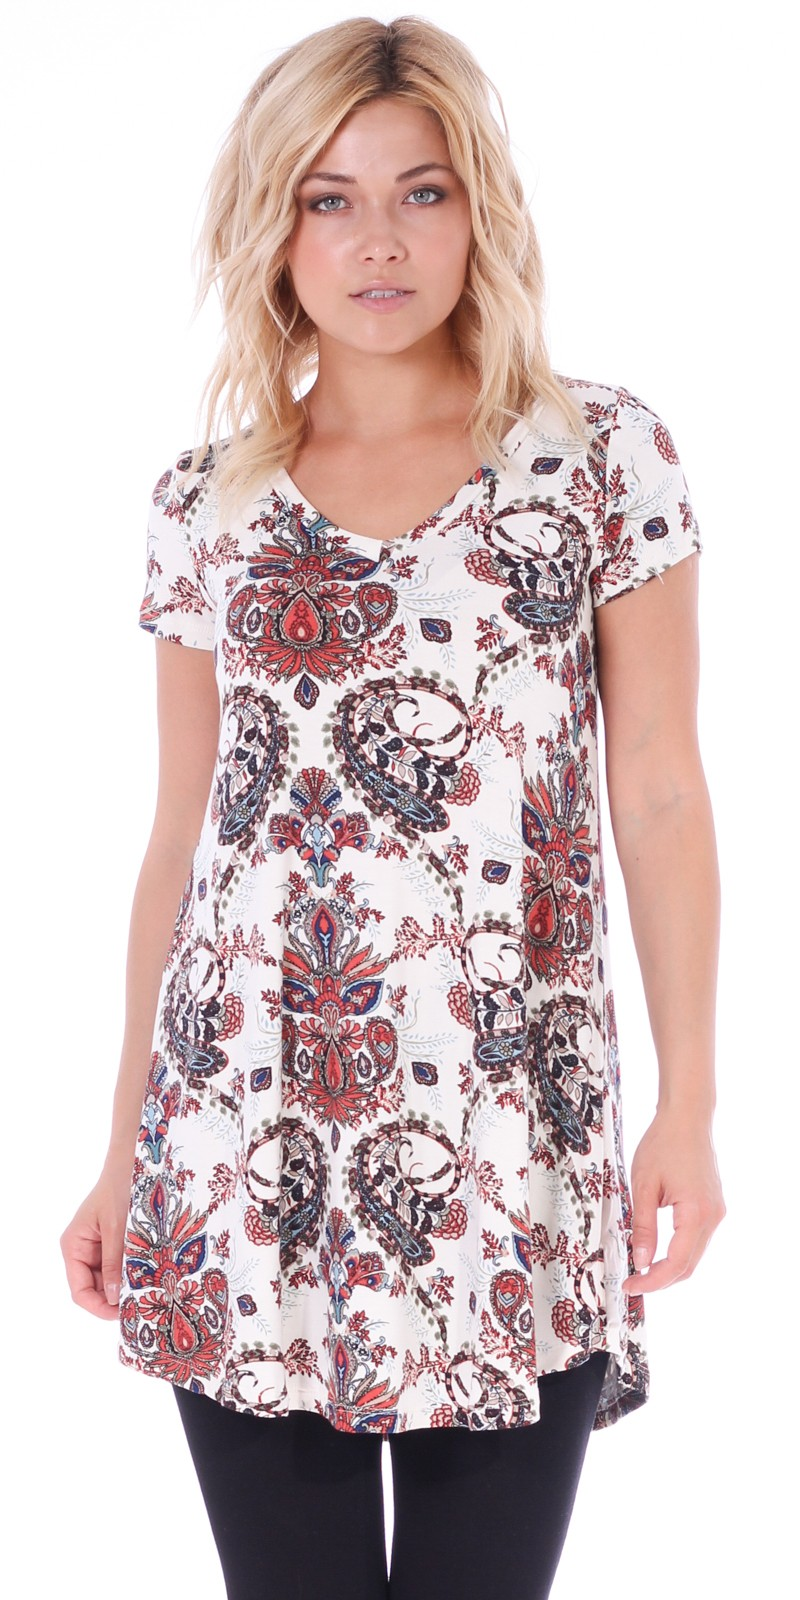 Women's Tunic Top Dress Short Sleeve - Wear With Leggings in Regular and Plus Size - Made In USA - ST74